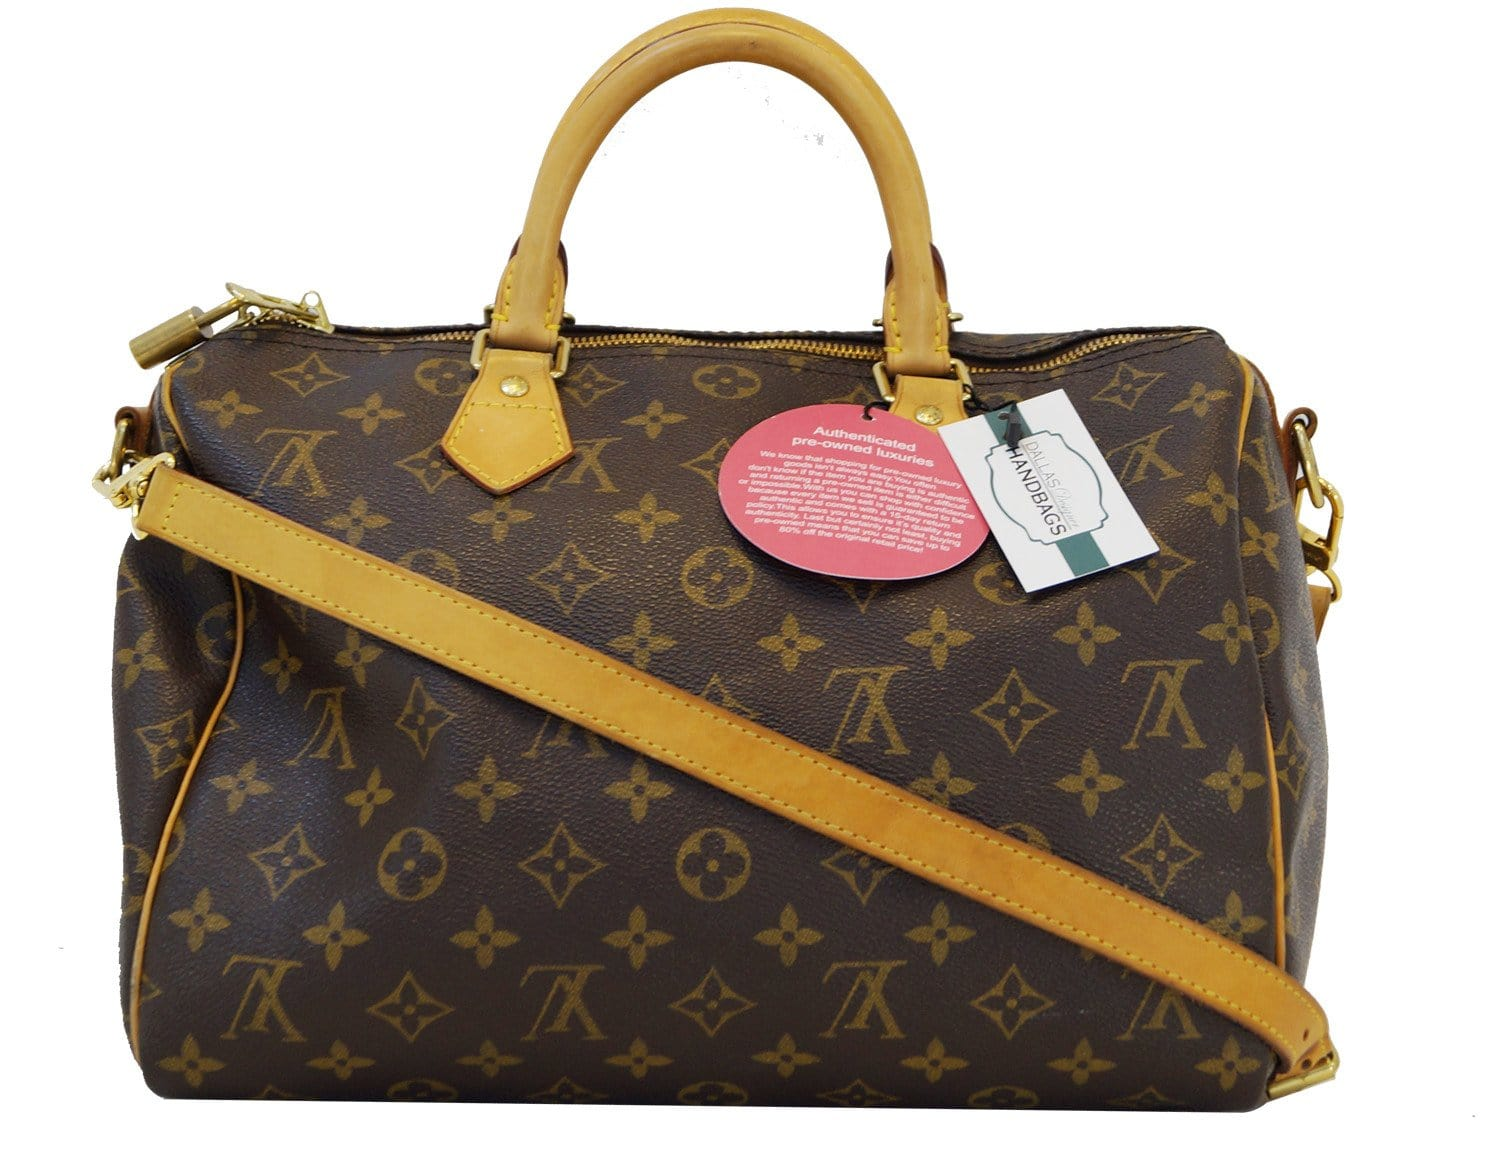 louis vuitton monogram speedy 30 bandouliere boston bag. Black Bedroom Furniture Sets. Home Design Ideas